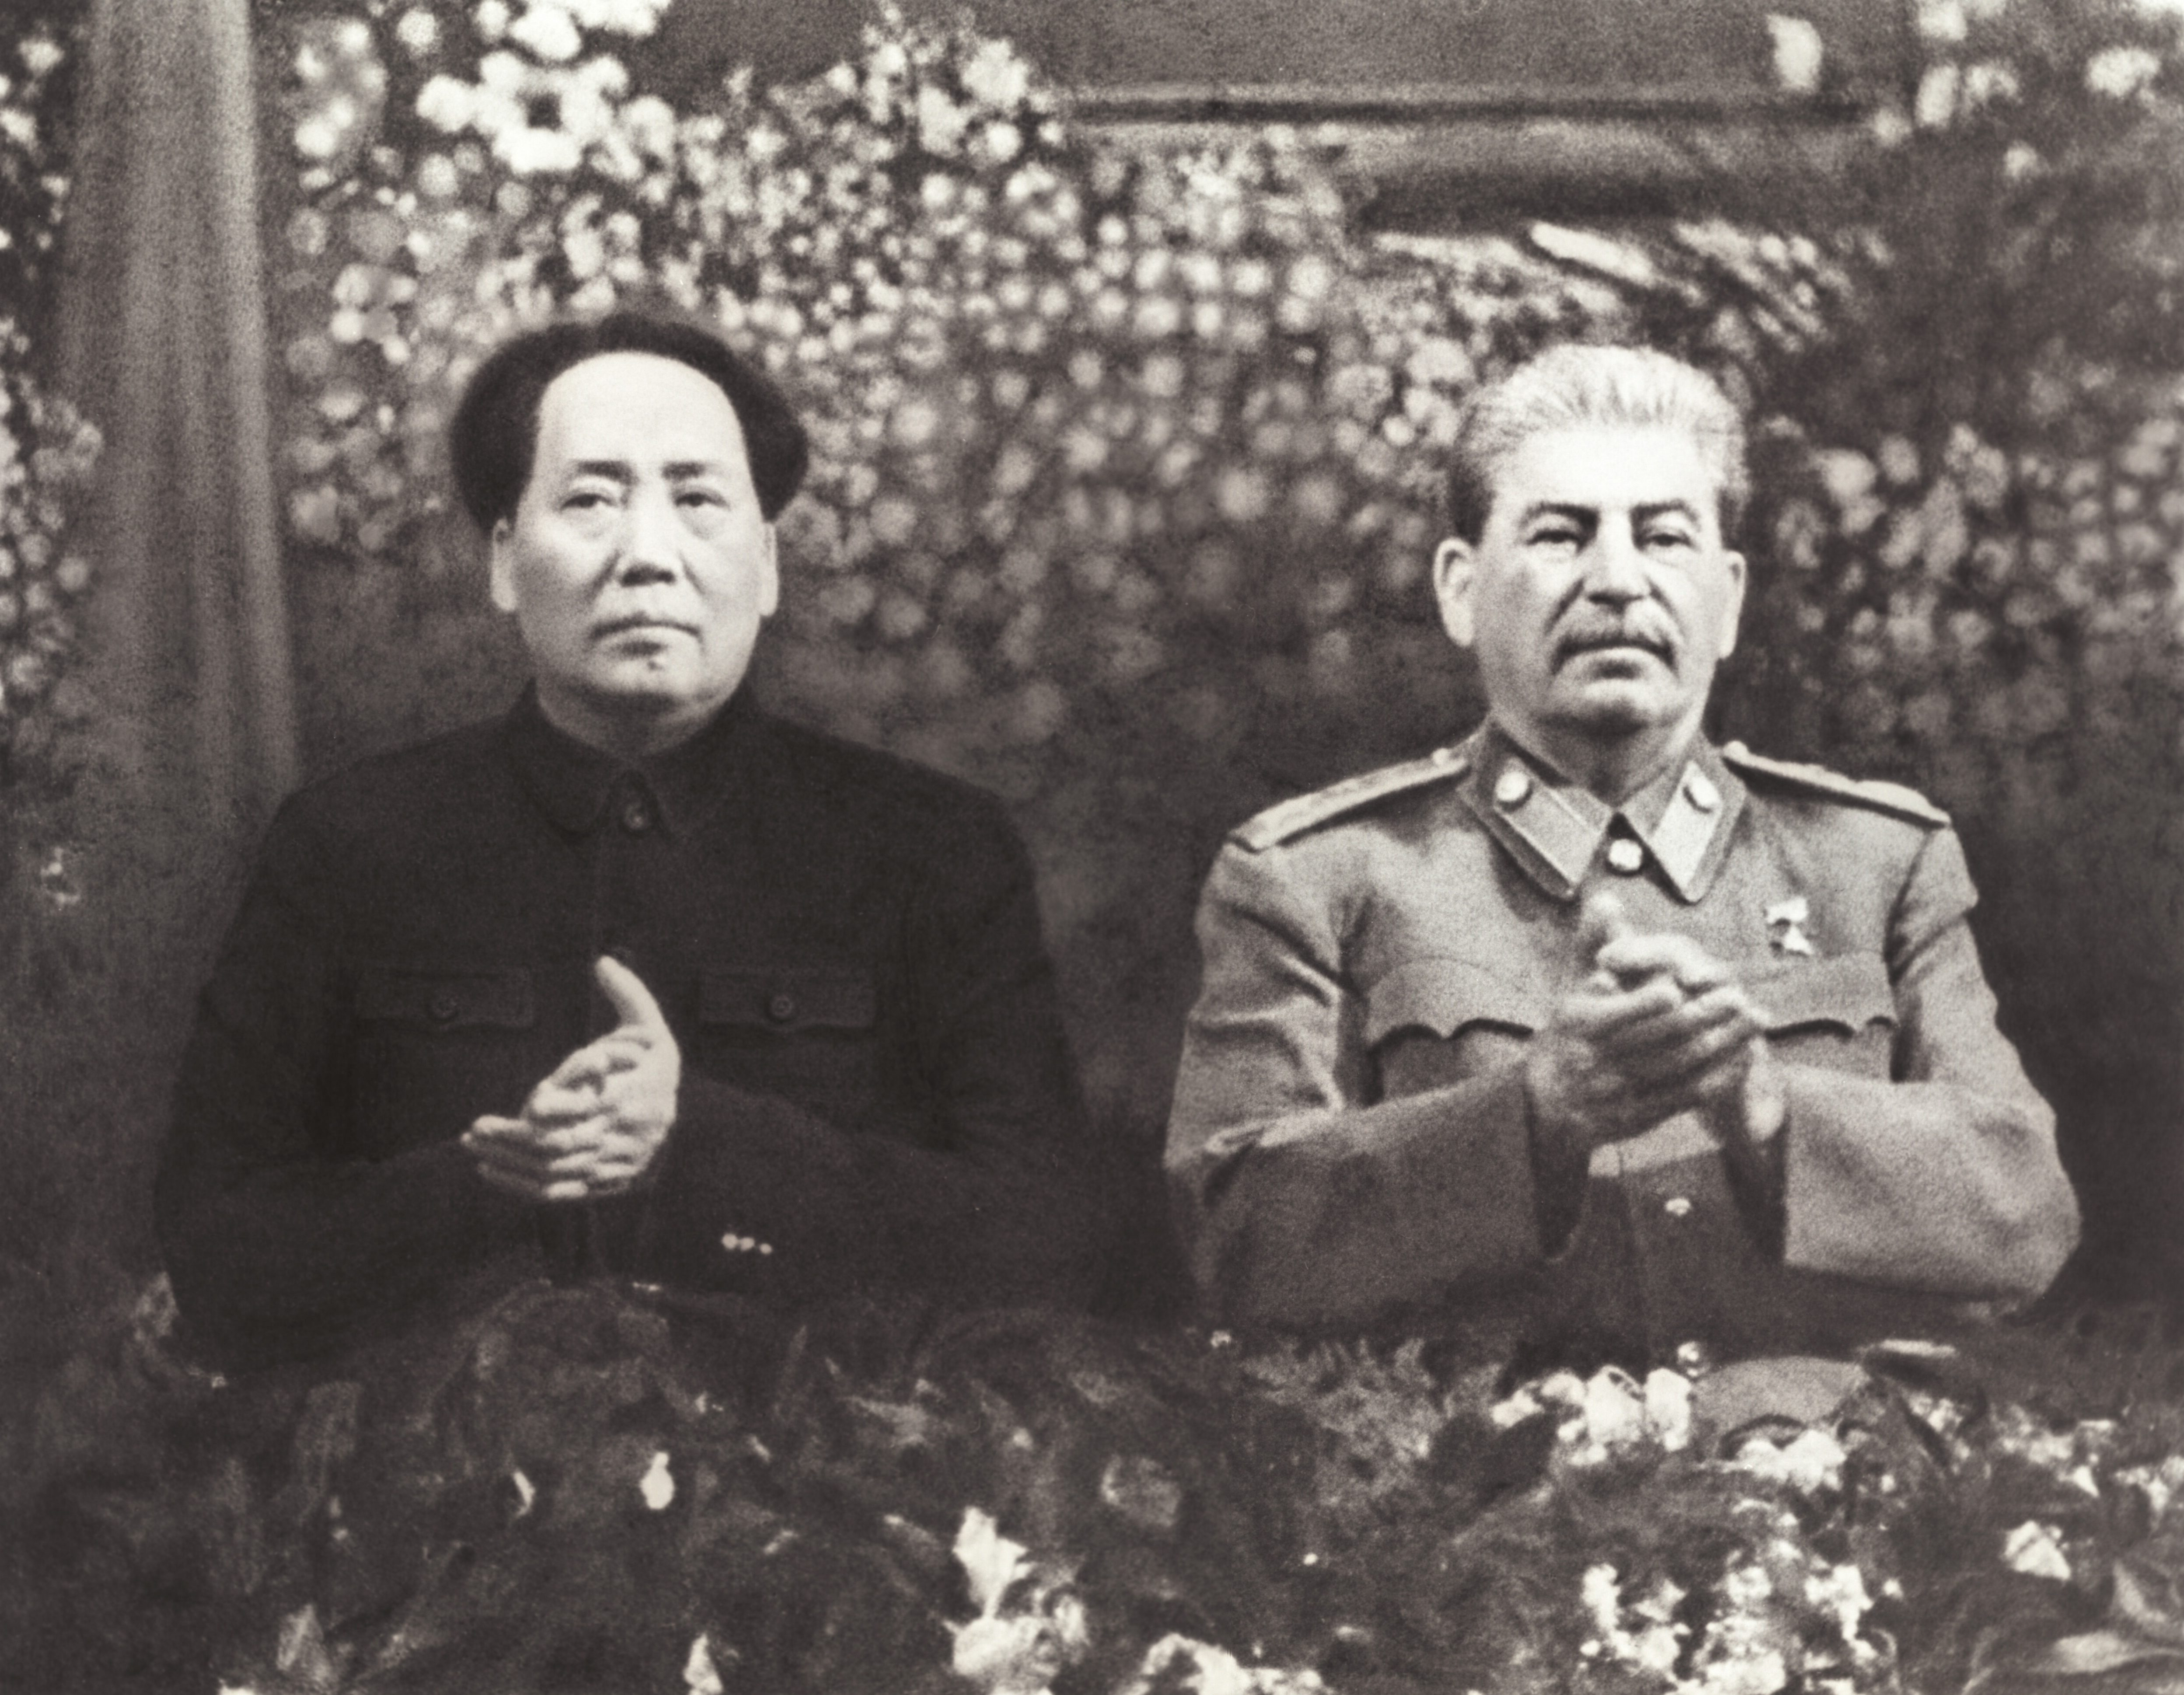 Mao Zedong and Josef Stalin.